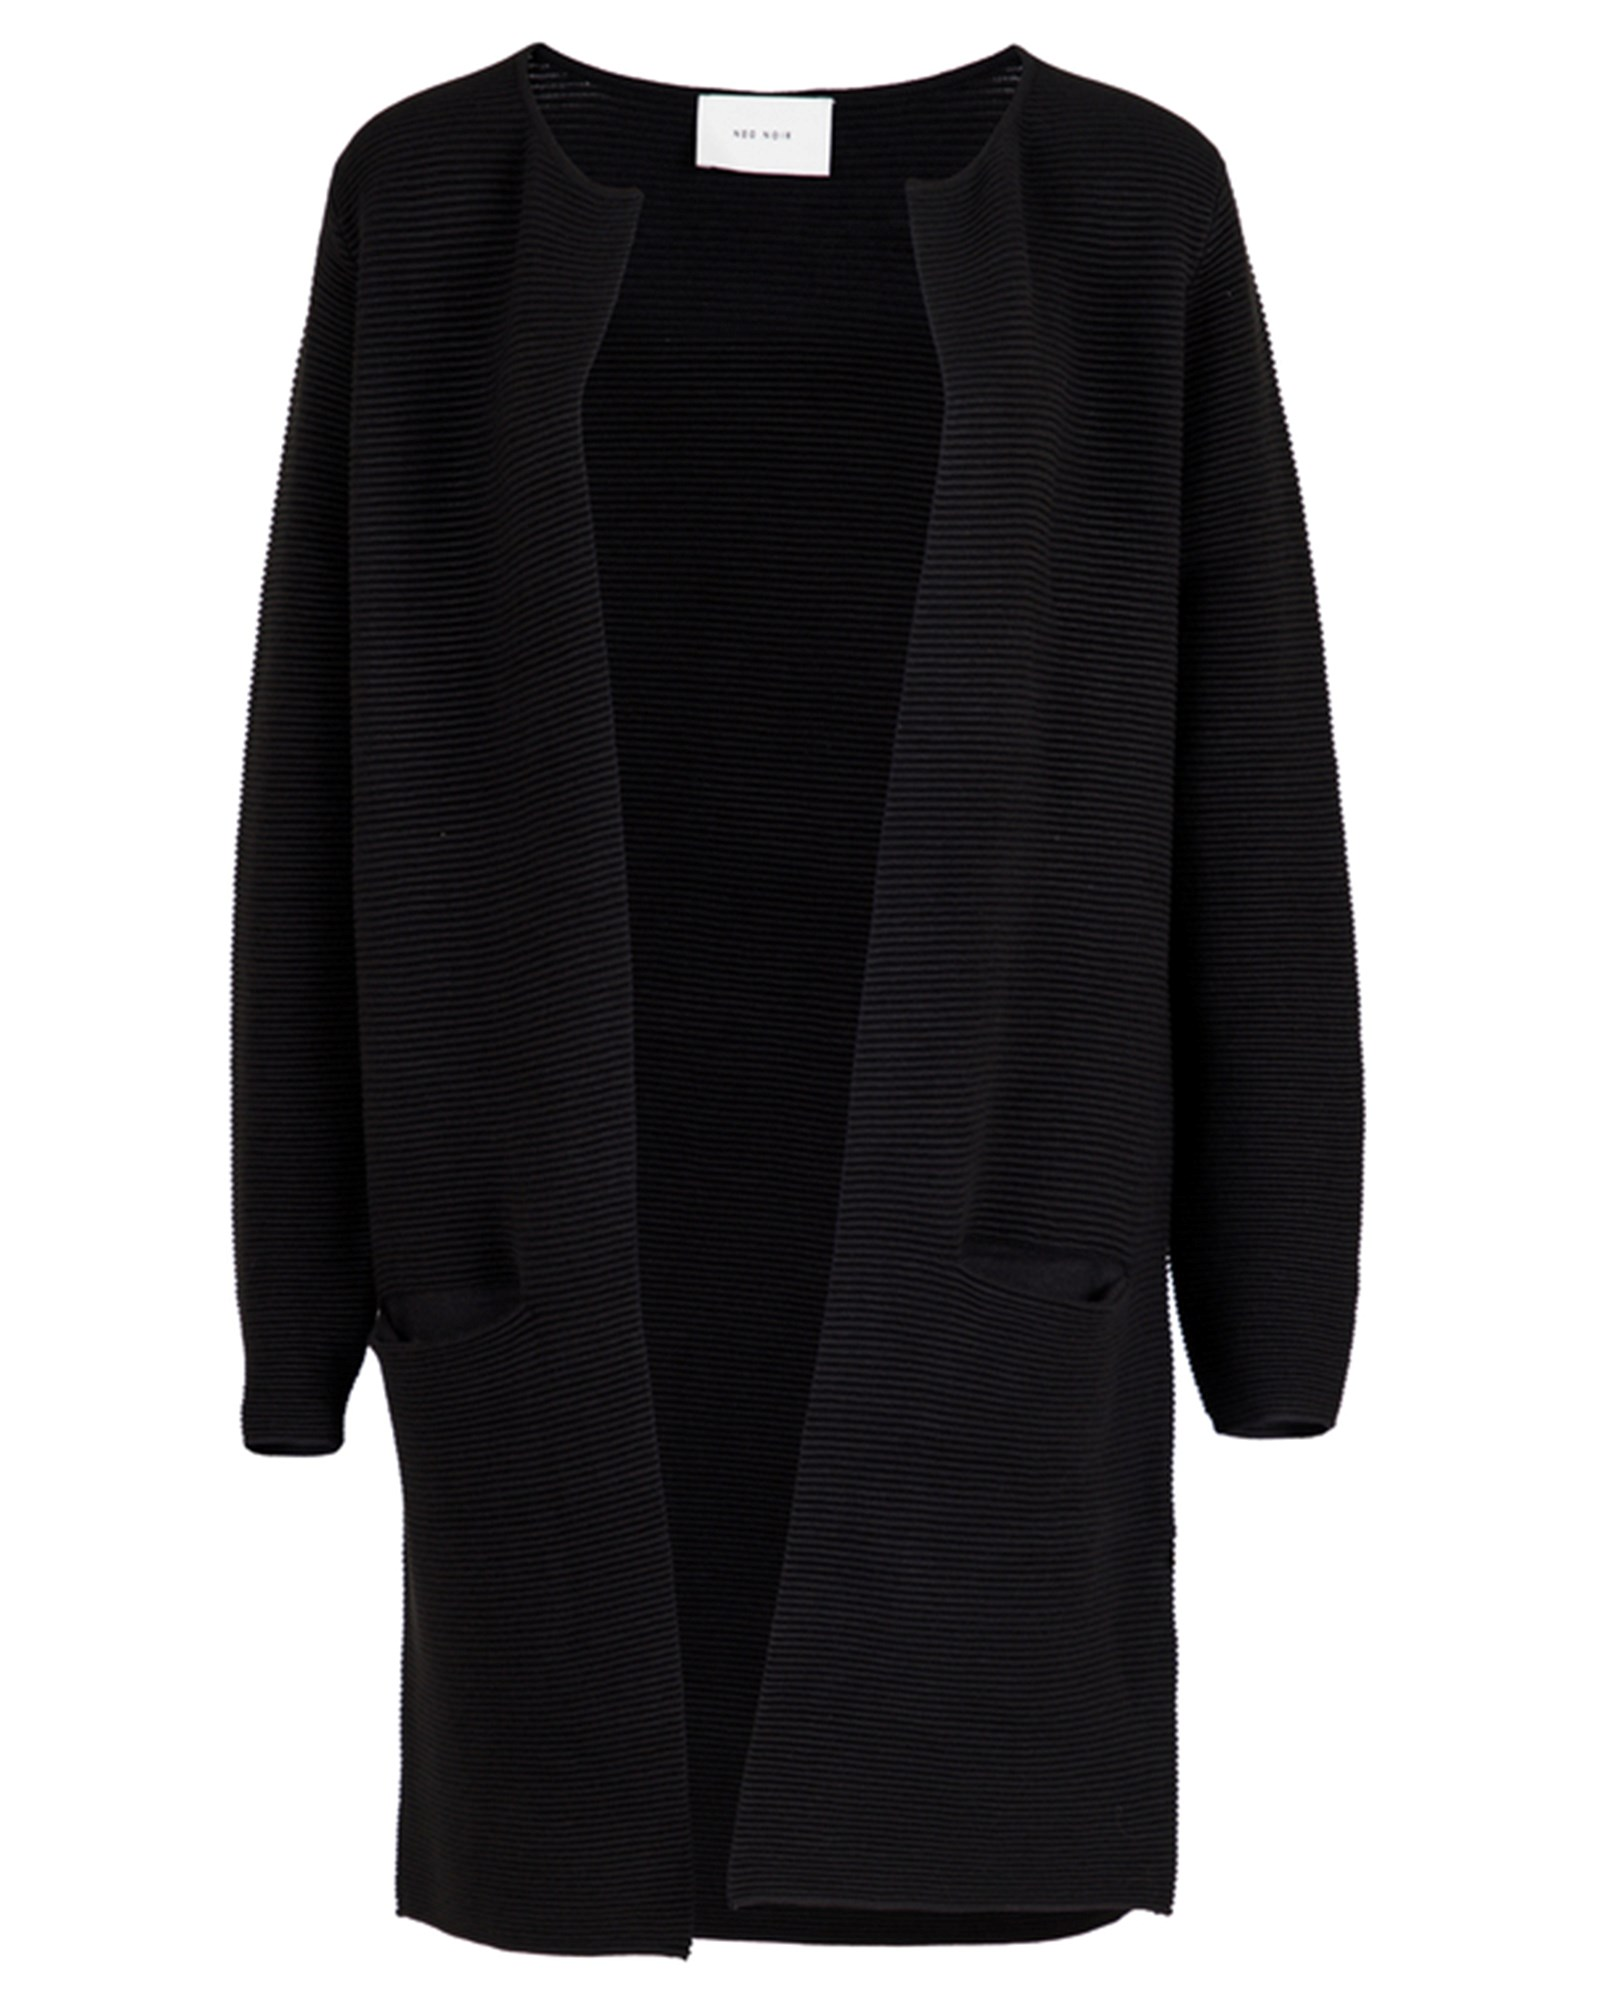 Claudia cardigan black